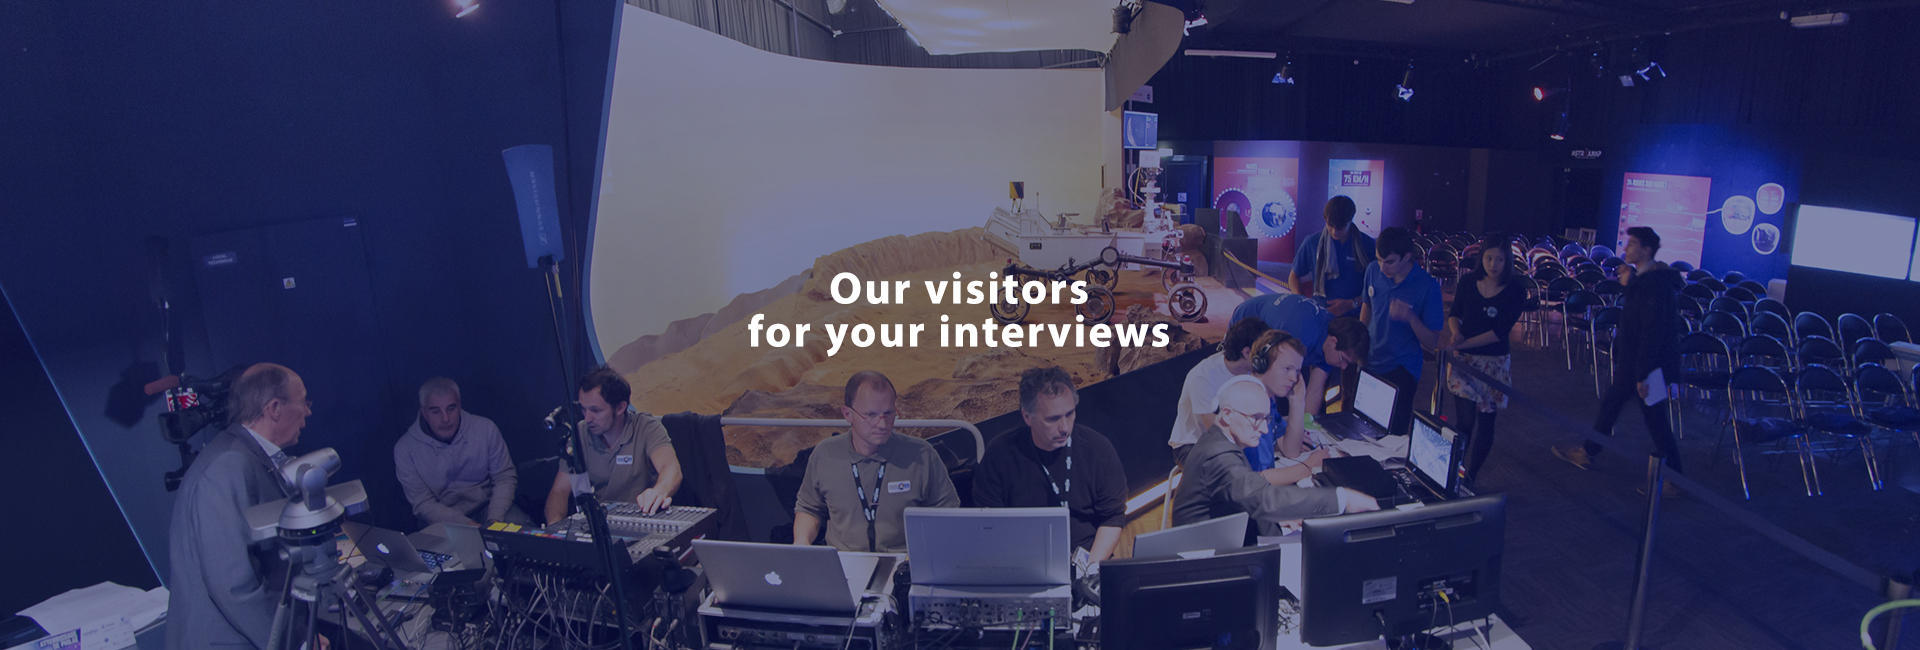 Our visitors for yours interviews